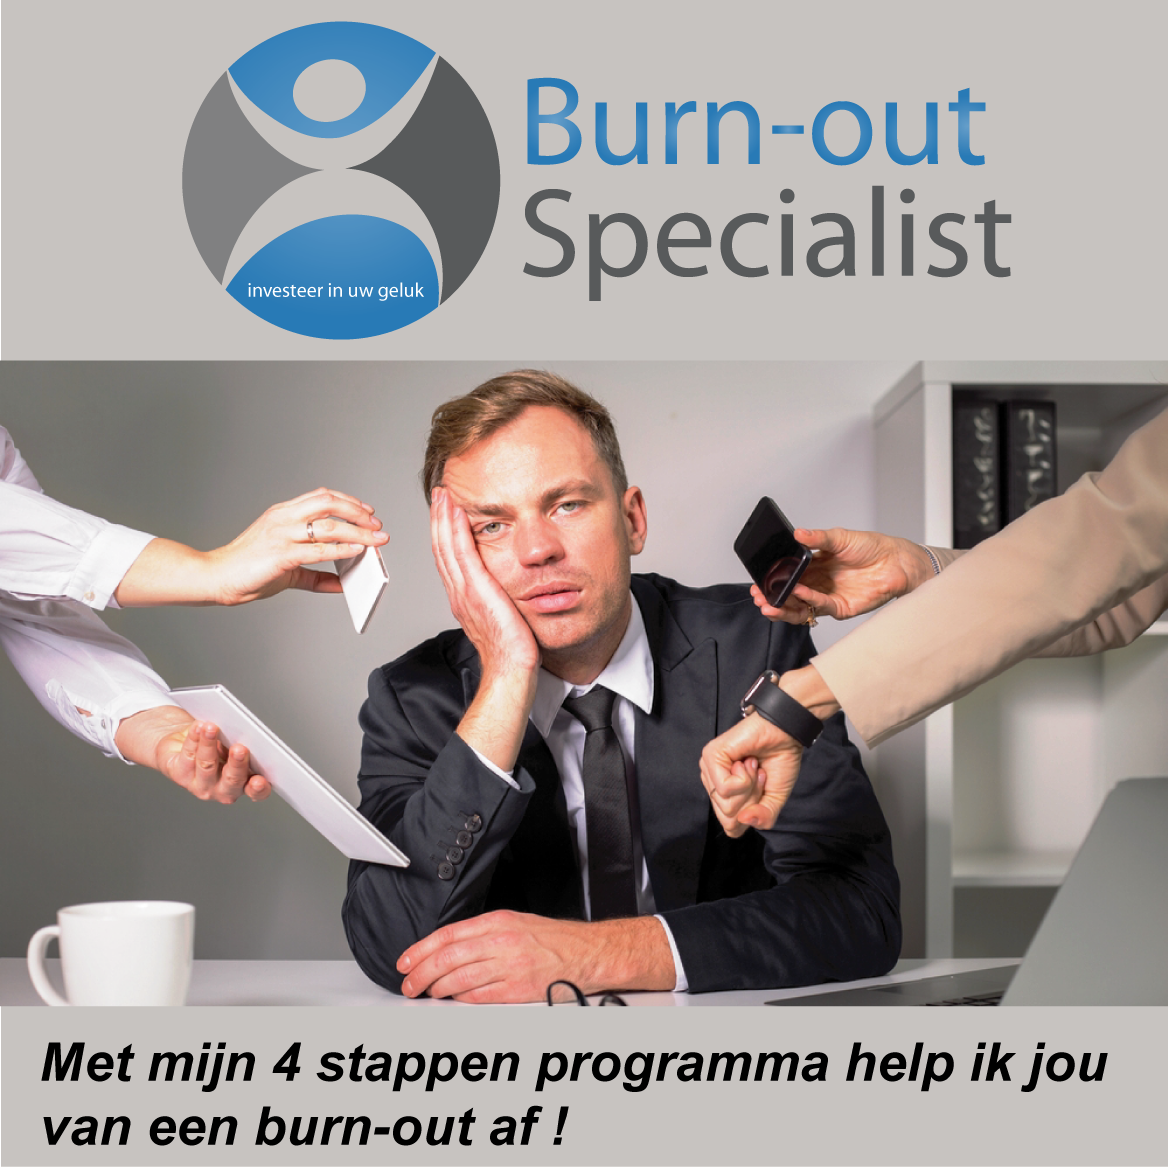 Burn-out Specialist